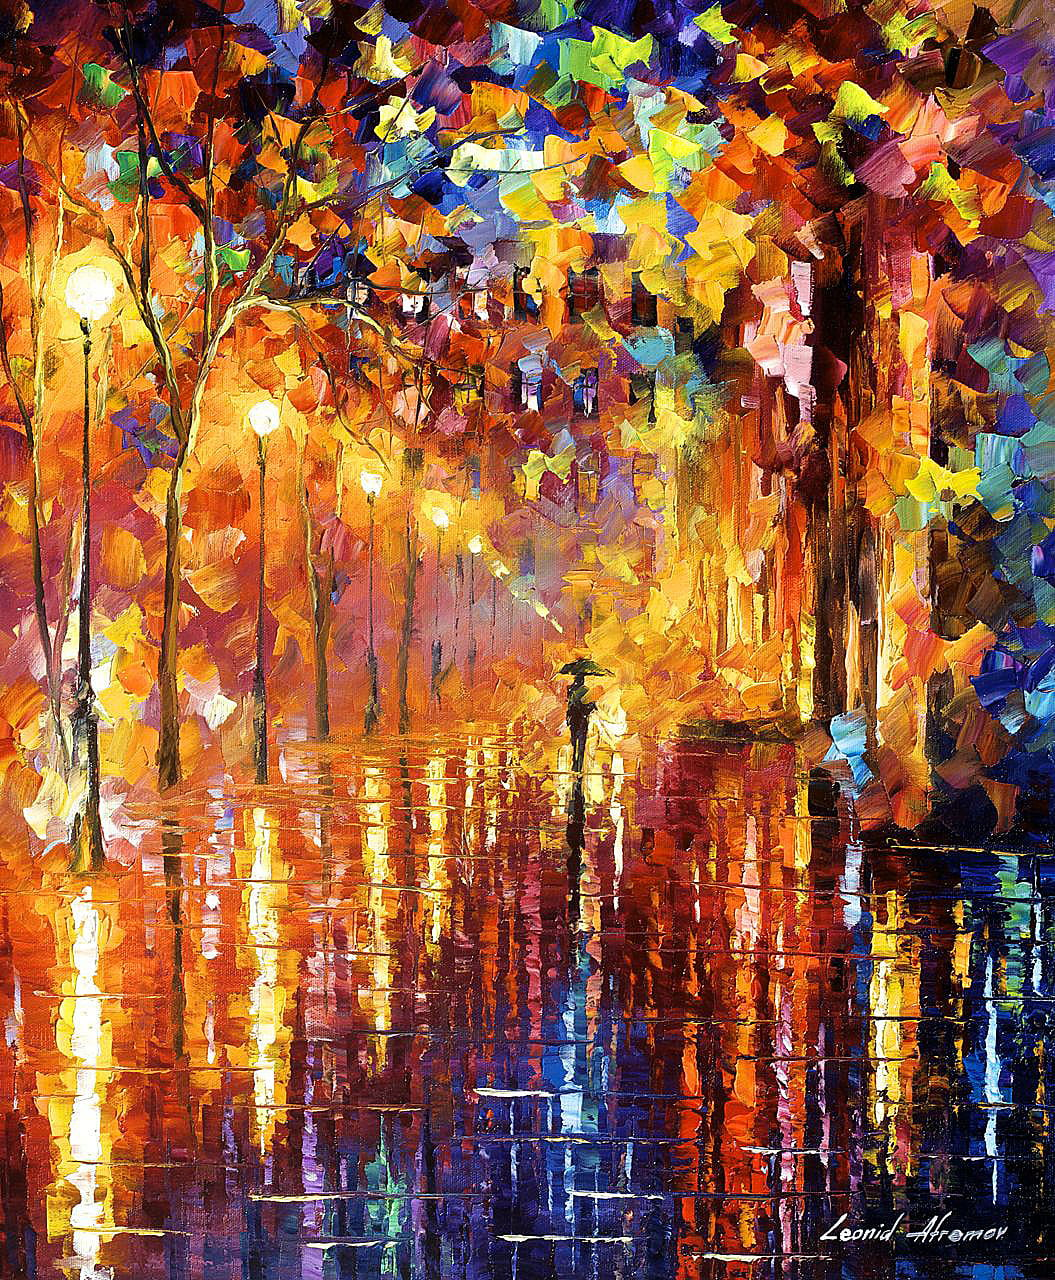 Lonely Girl Walking In Rain Wallpaper Dreaming Rain Palette Knife Oil Painting On Canvas By